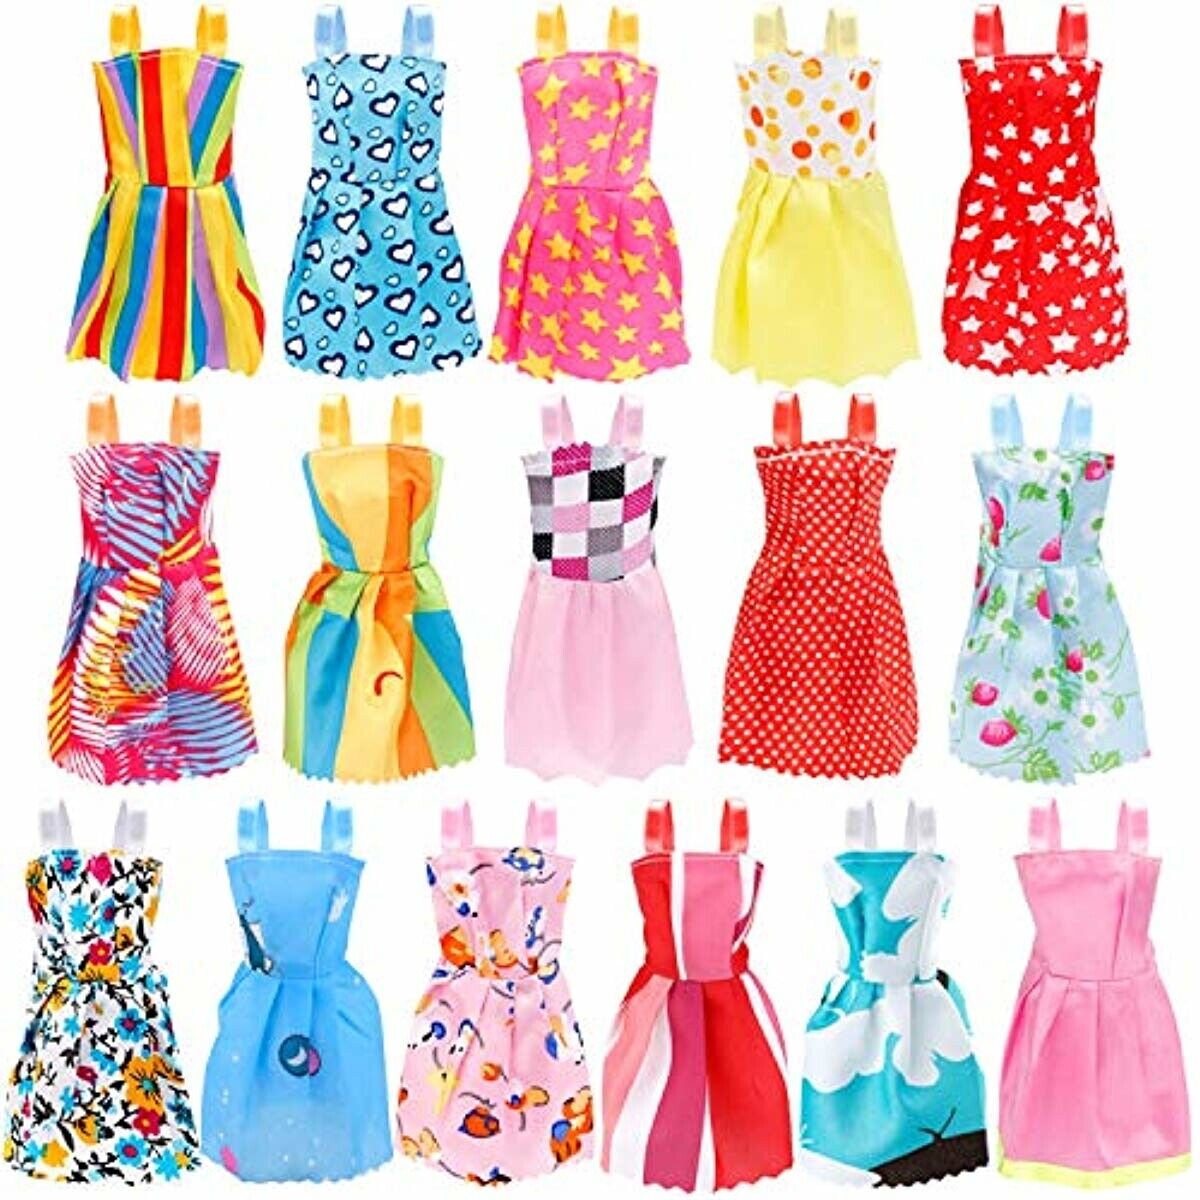 120PCS Dress Short Skirt Shoes Bags Necklace Tableware Accessory for Barbie Doll